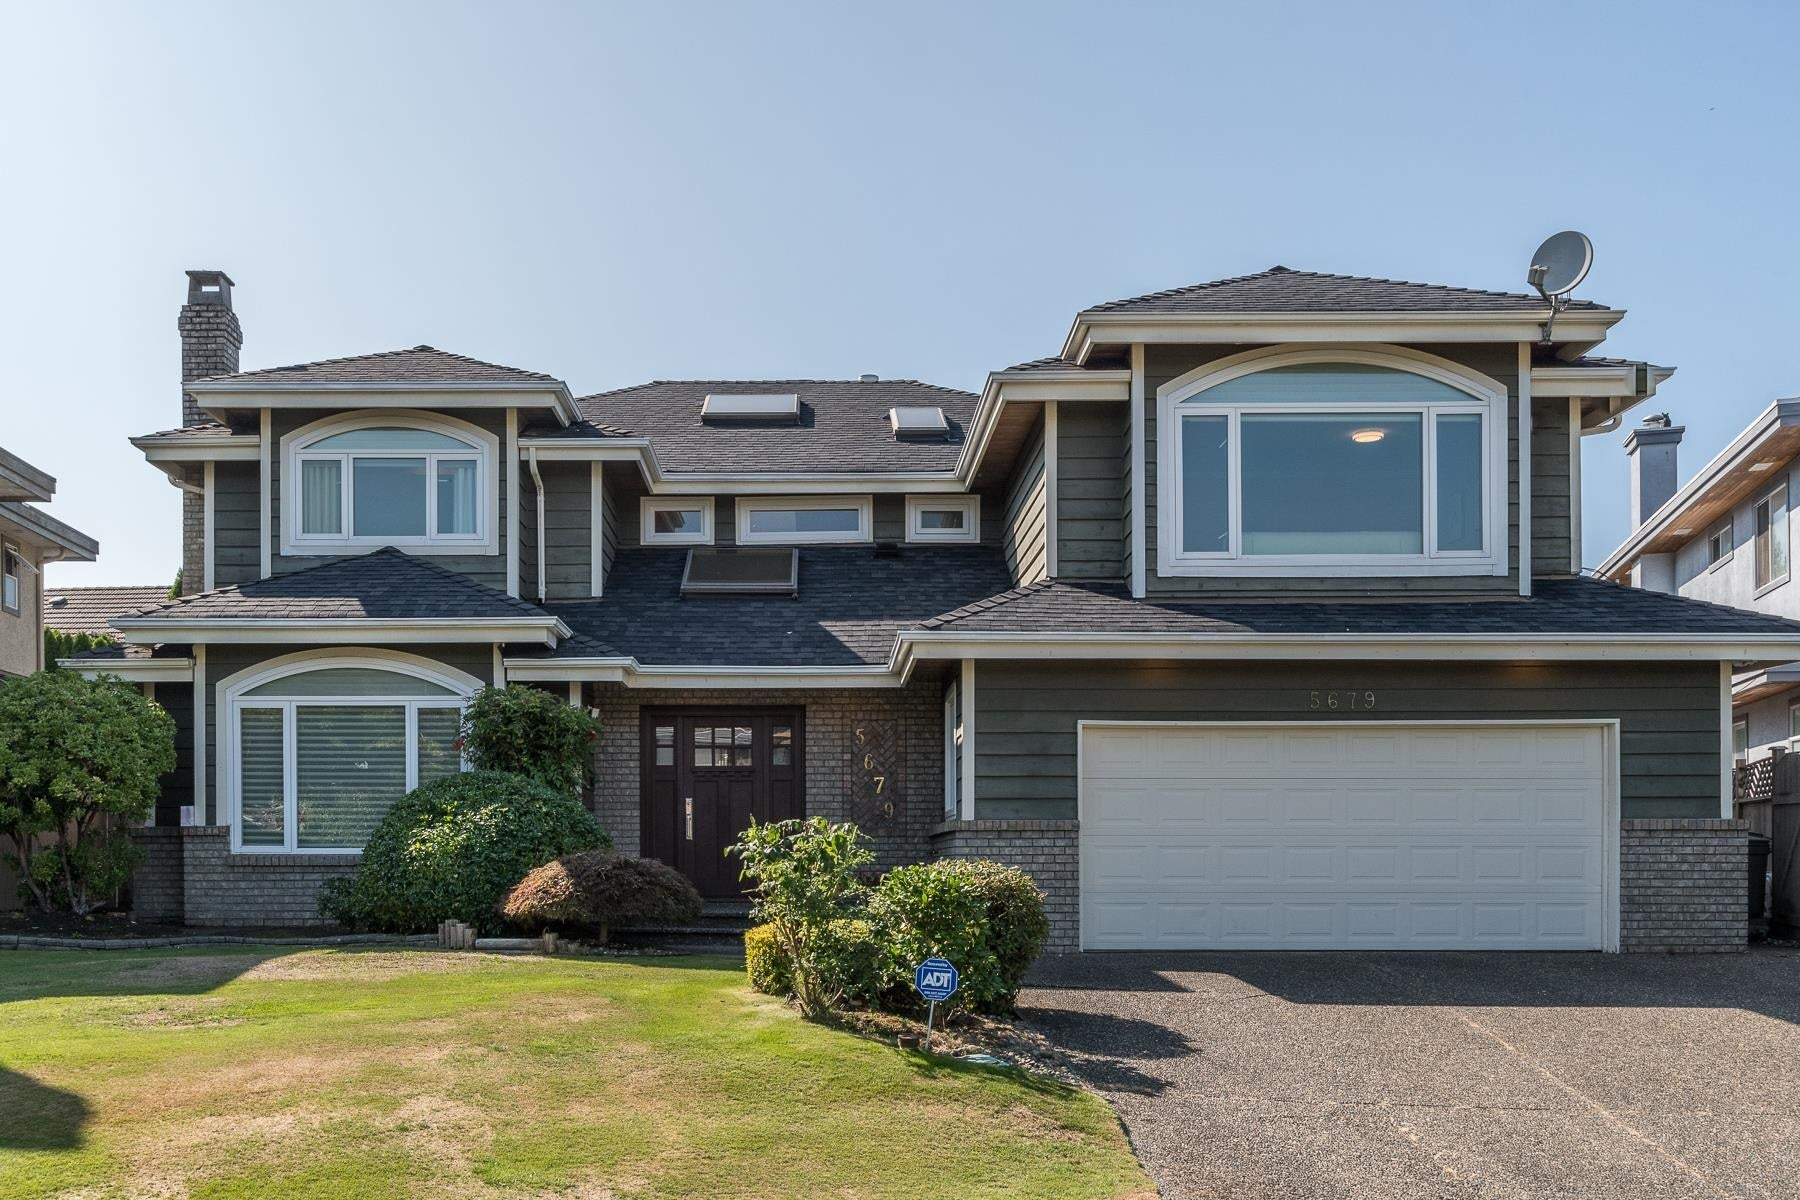 5679 CORNWALL PLACE - Terra Nova House/Single Family for sale, 5 Bedrooms (R2613888)